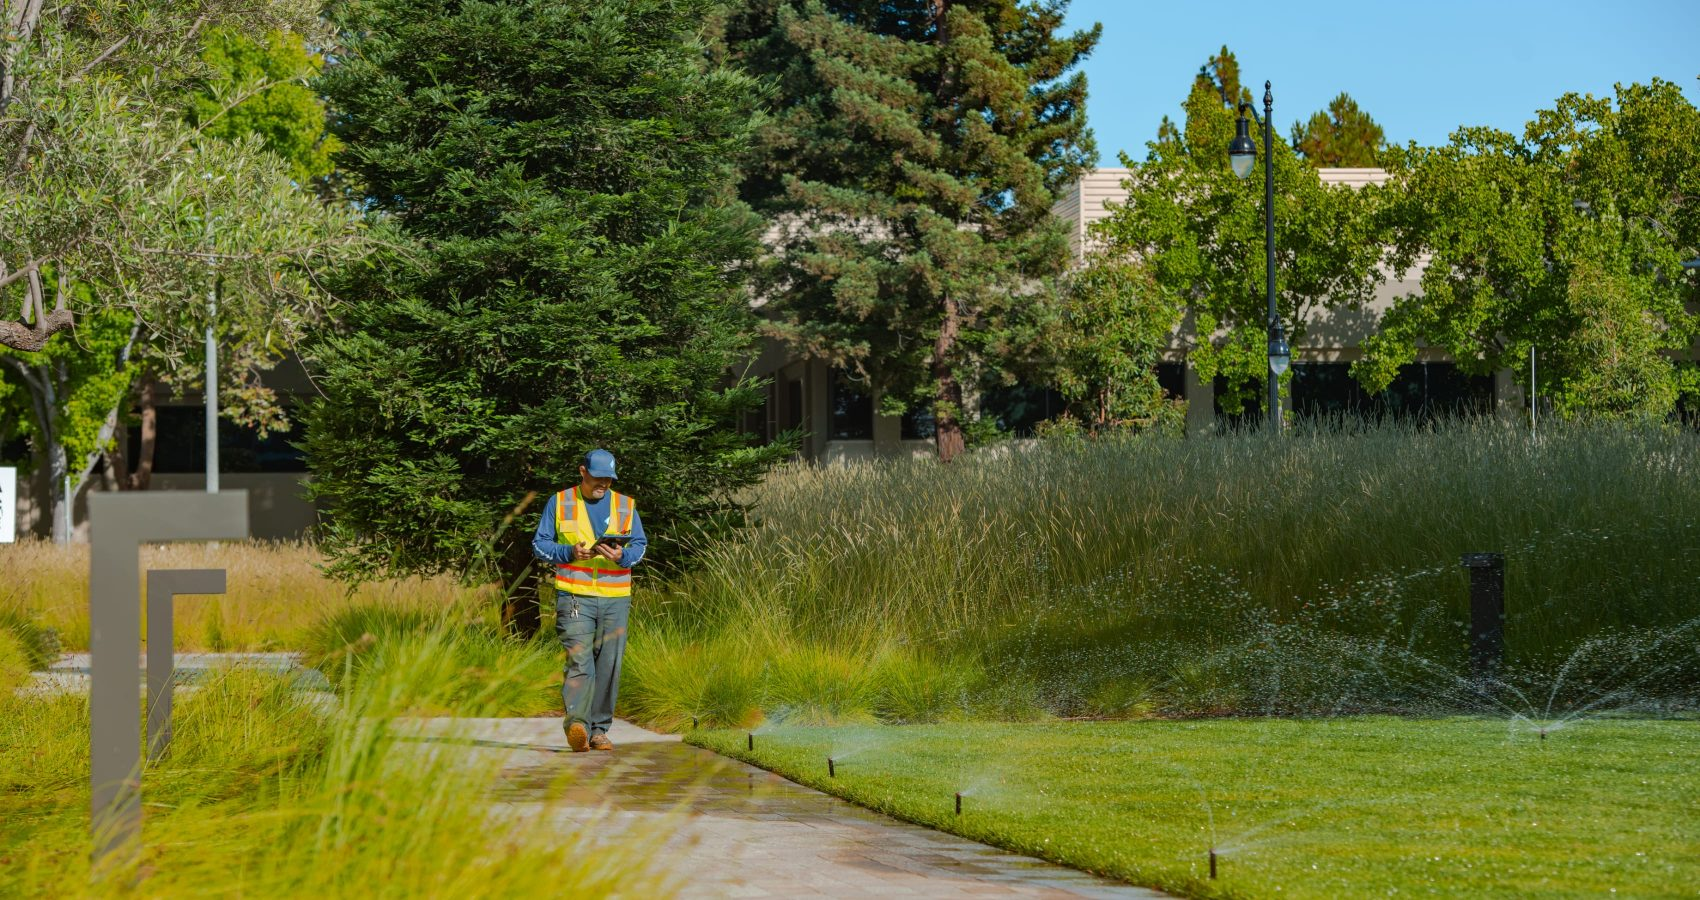 Gothic Landscape offers comprehensive water resource management and irrigation infrastructure services.